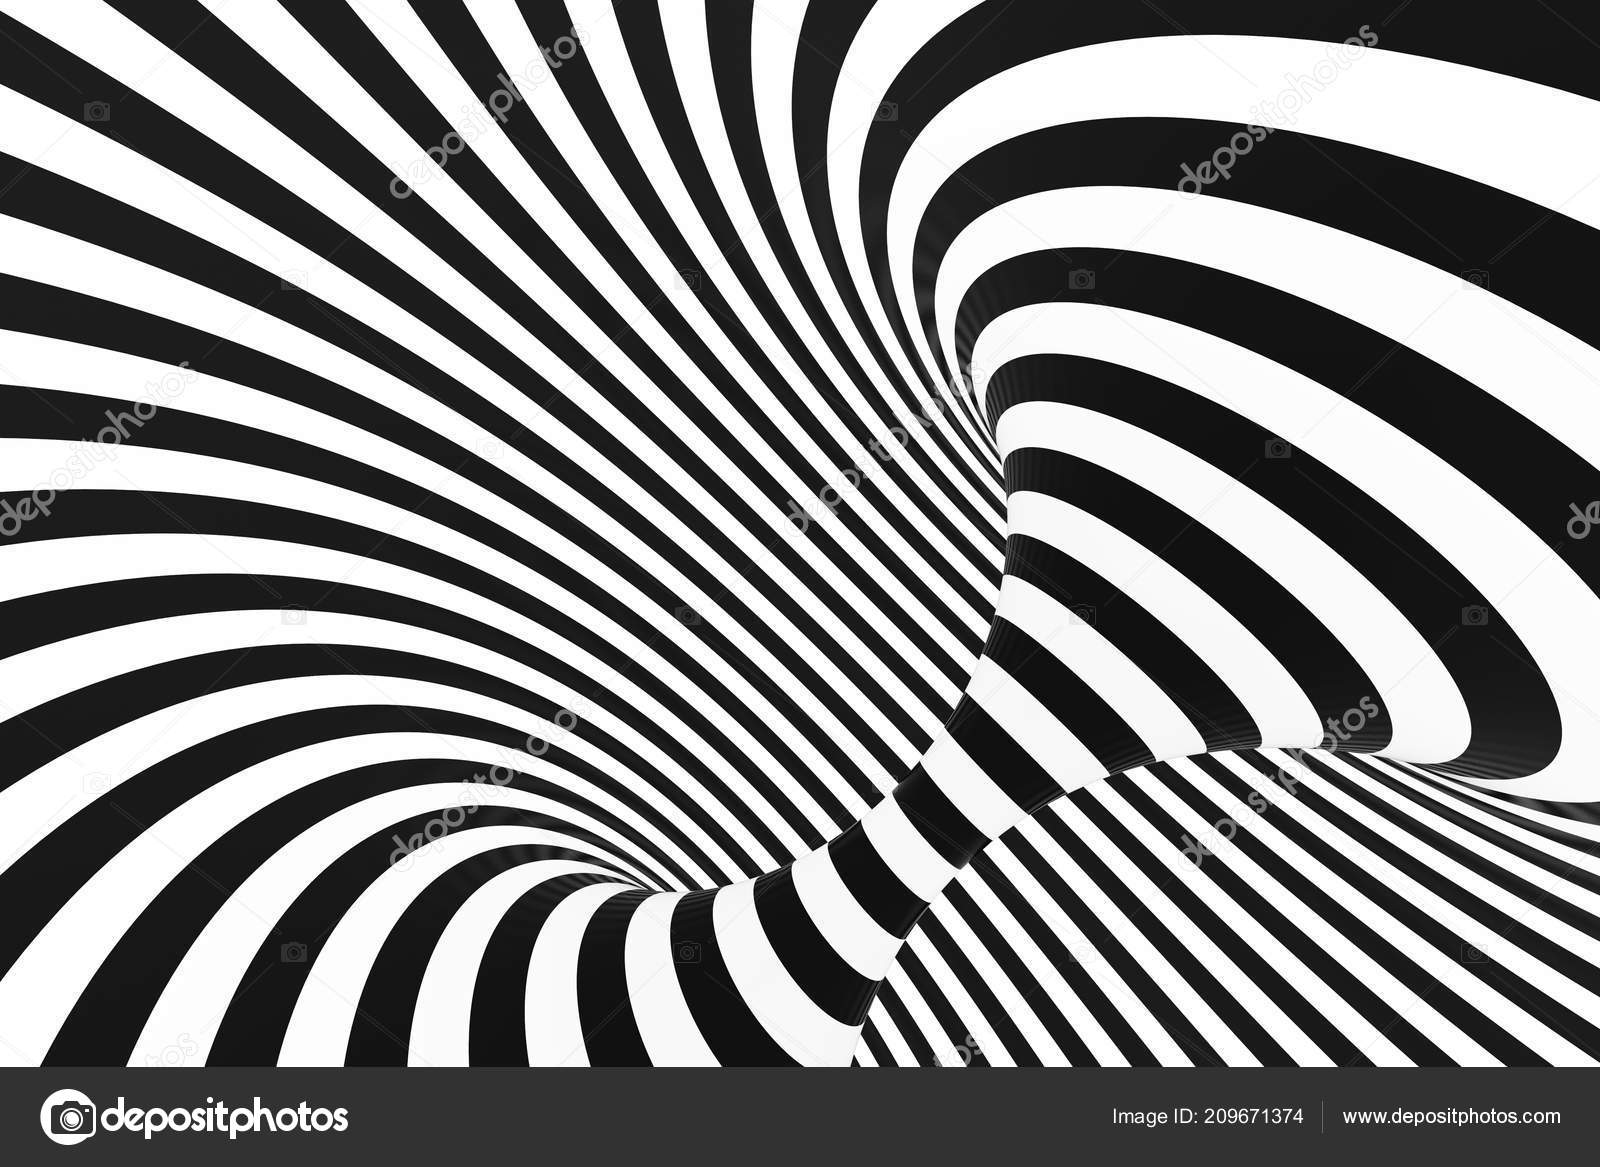 Black and white spiral tunnel striped twisted hypnotic